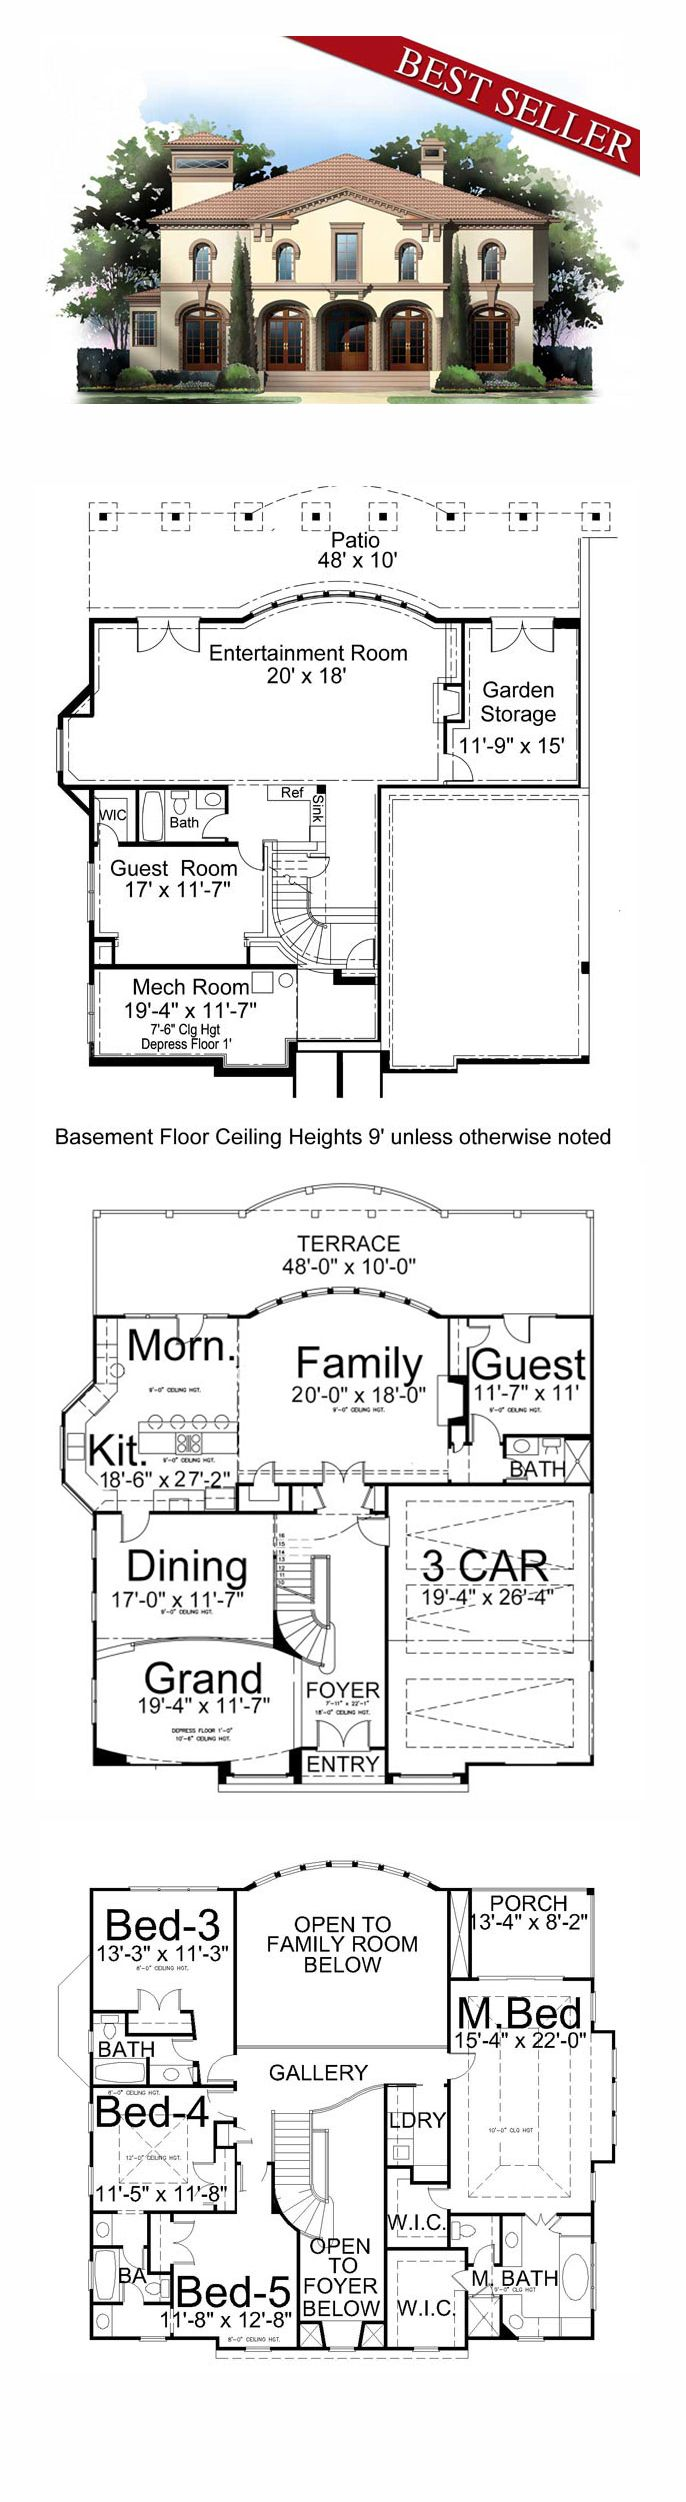 16 best house plans with in law suites images on pinterest cool cool house plan id chp 37100 total living area 3073 sq